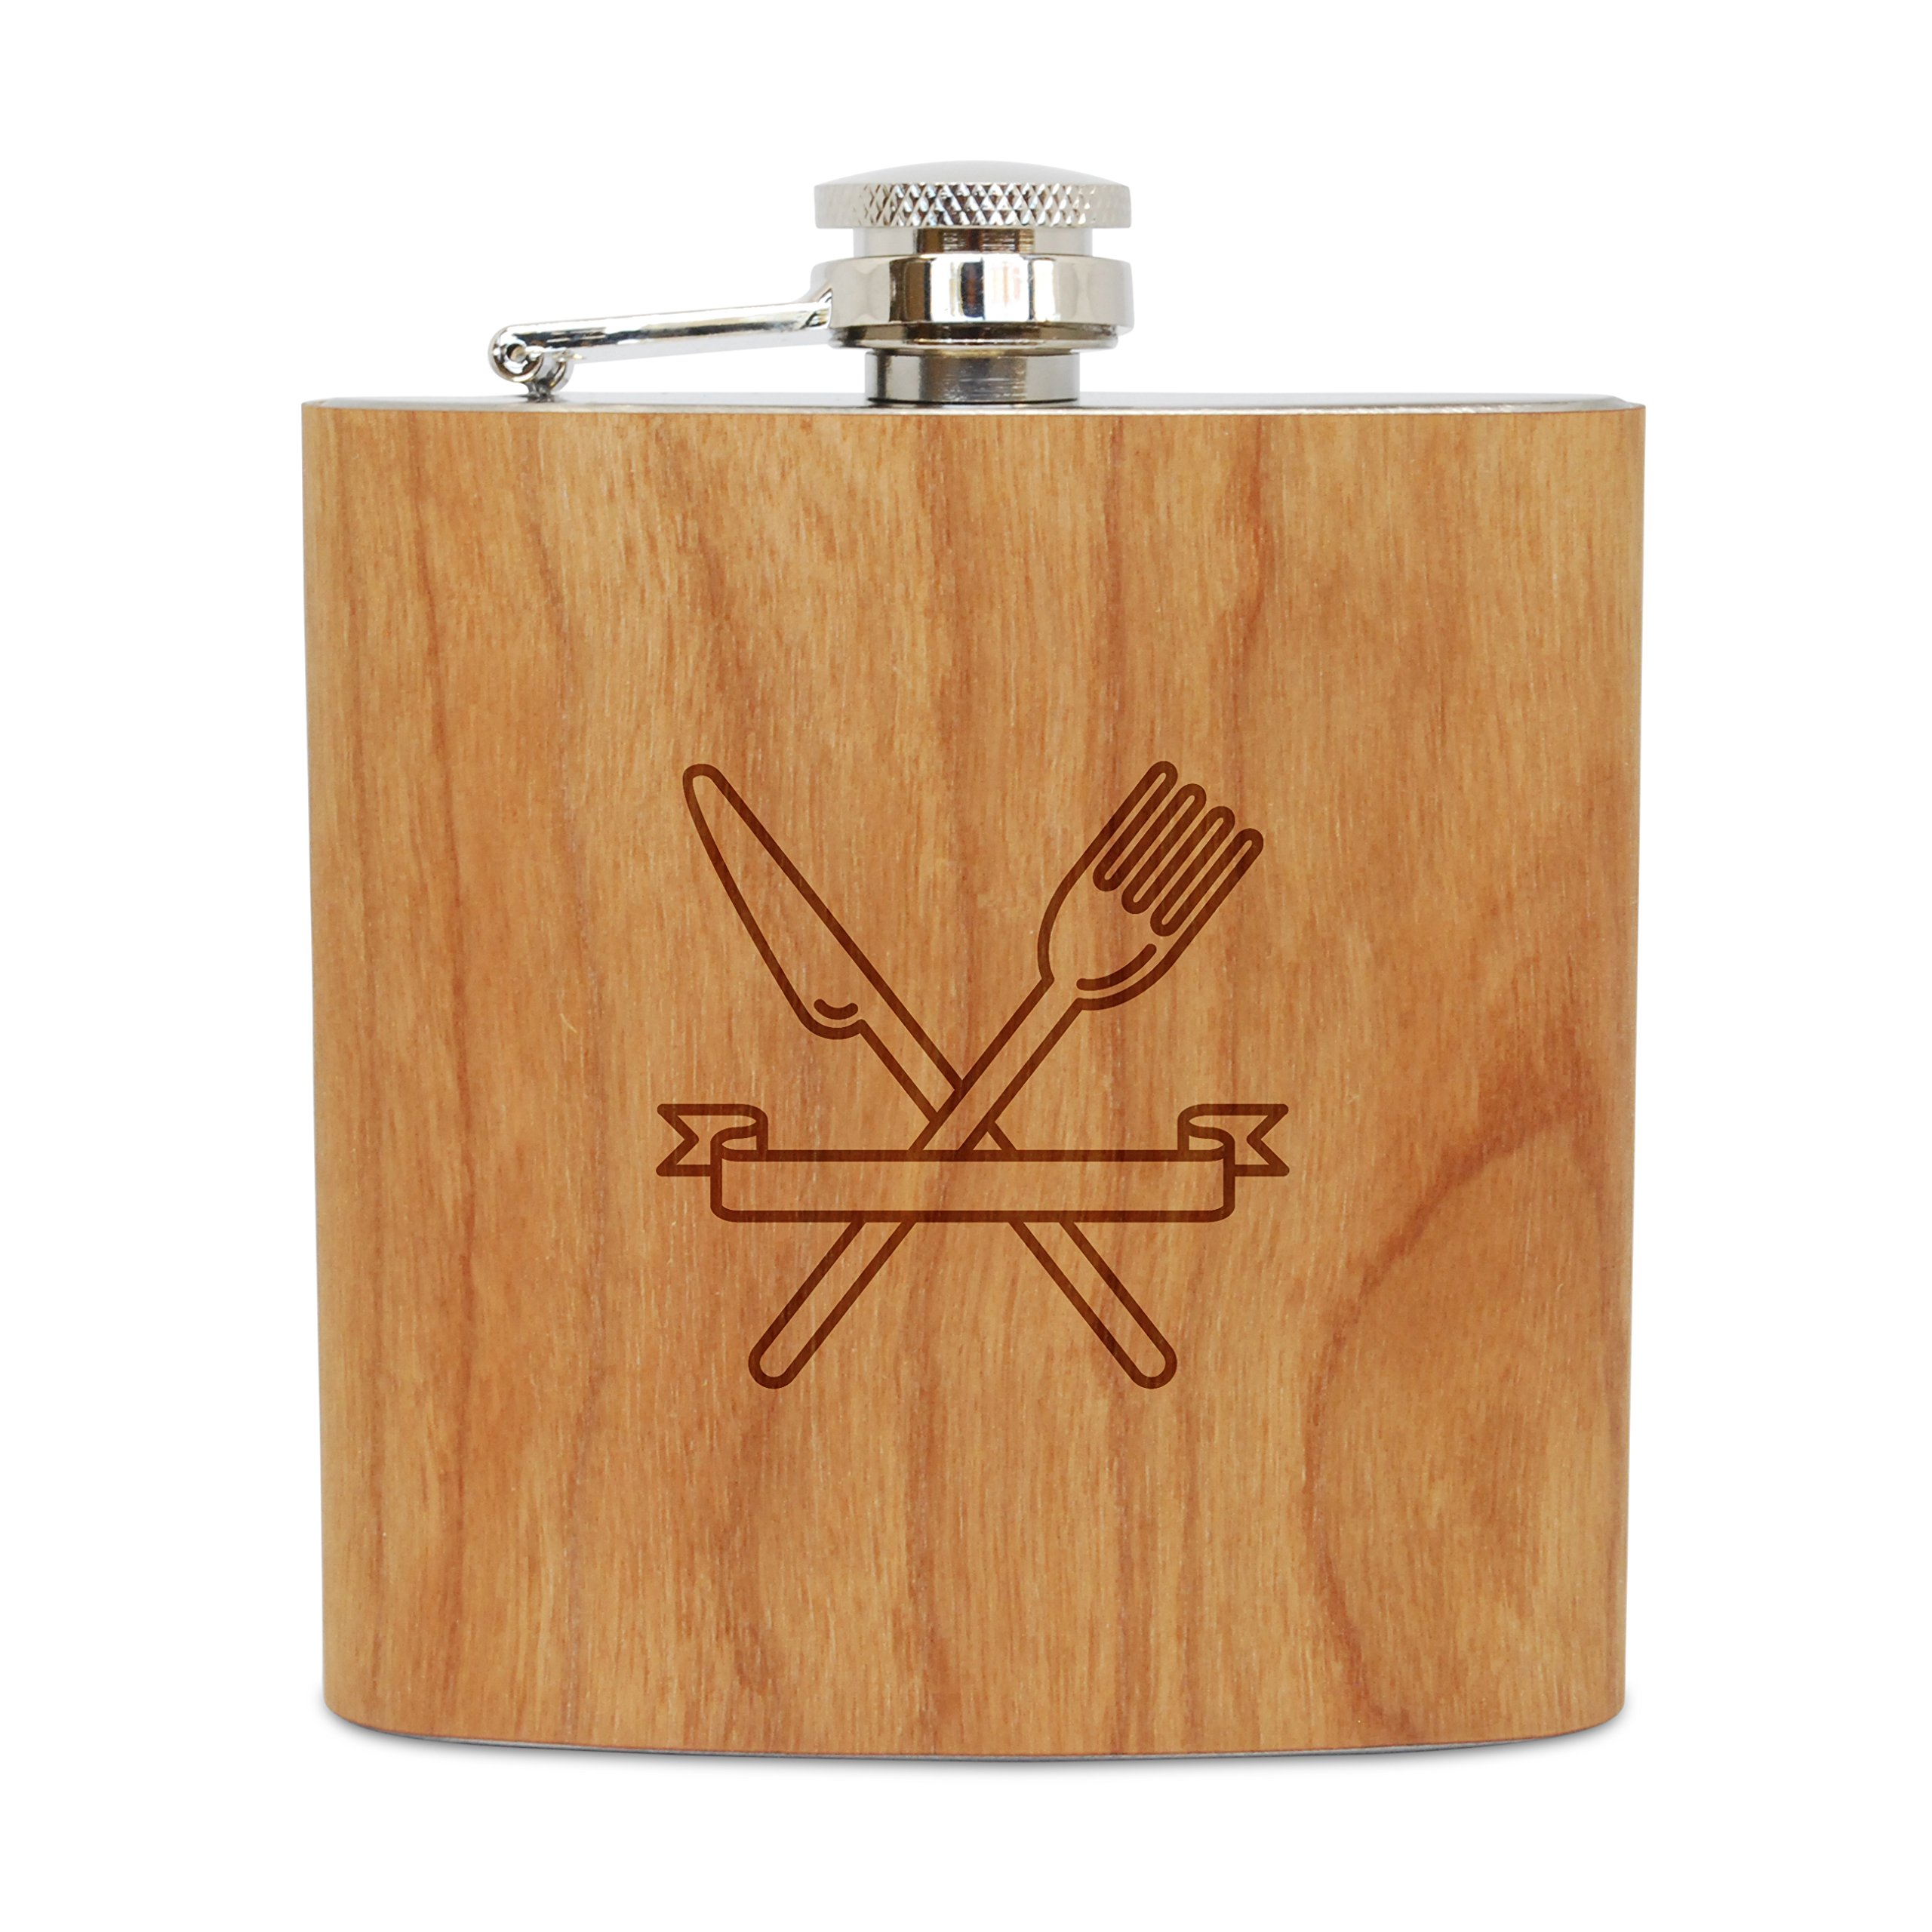 WOODEN ACCESSORIES COMPANY Cherry Wood Flask With Stainless Steel Body - Laser Engraved Flask With Restaurant Logo Design - 6 Oz Wood Hip Flask Handmade In USA